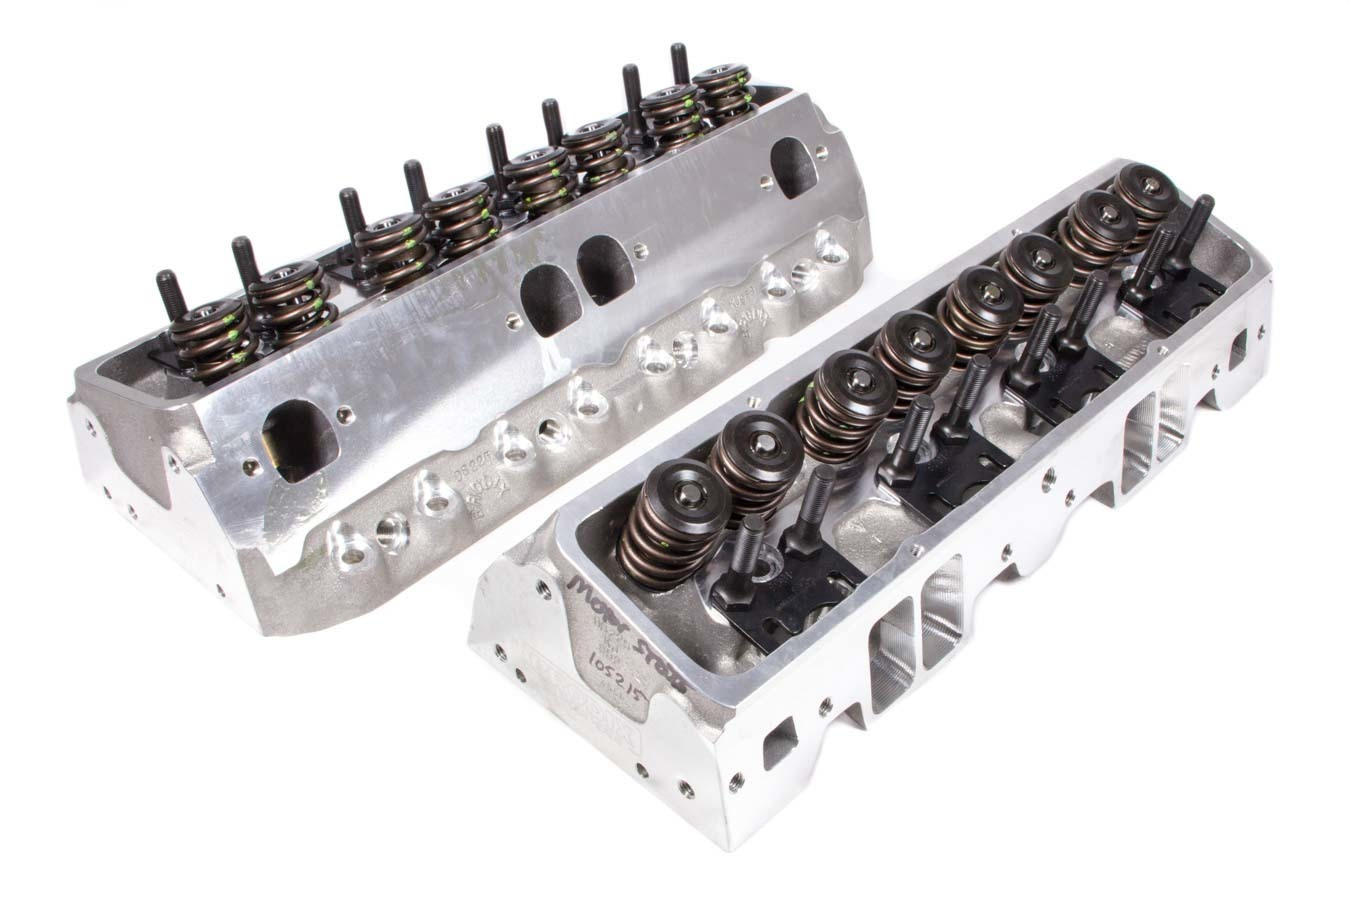 Brodix 1321001 Cylinder Head, DS 225, Assembled, 2.080 / 1.600 in Valves, 225 cc Intake, 68 cc Chamber, 1.550 in Springs, Aluminum, Small Block Chevy, Pair